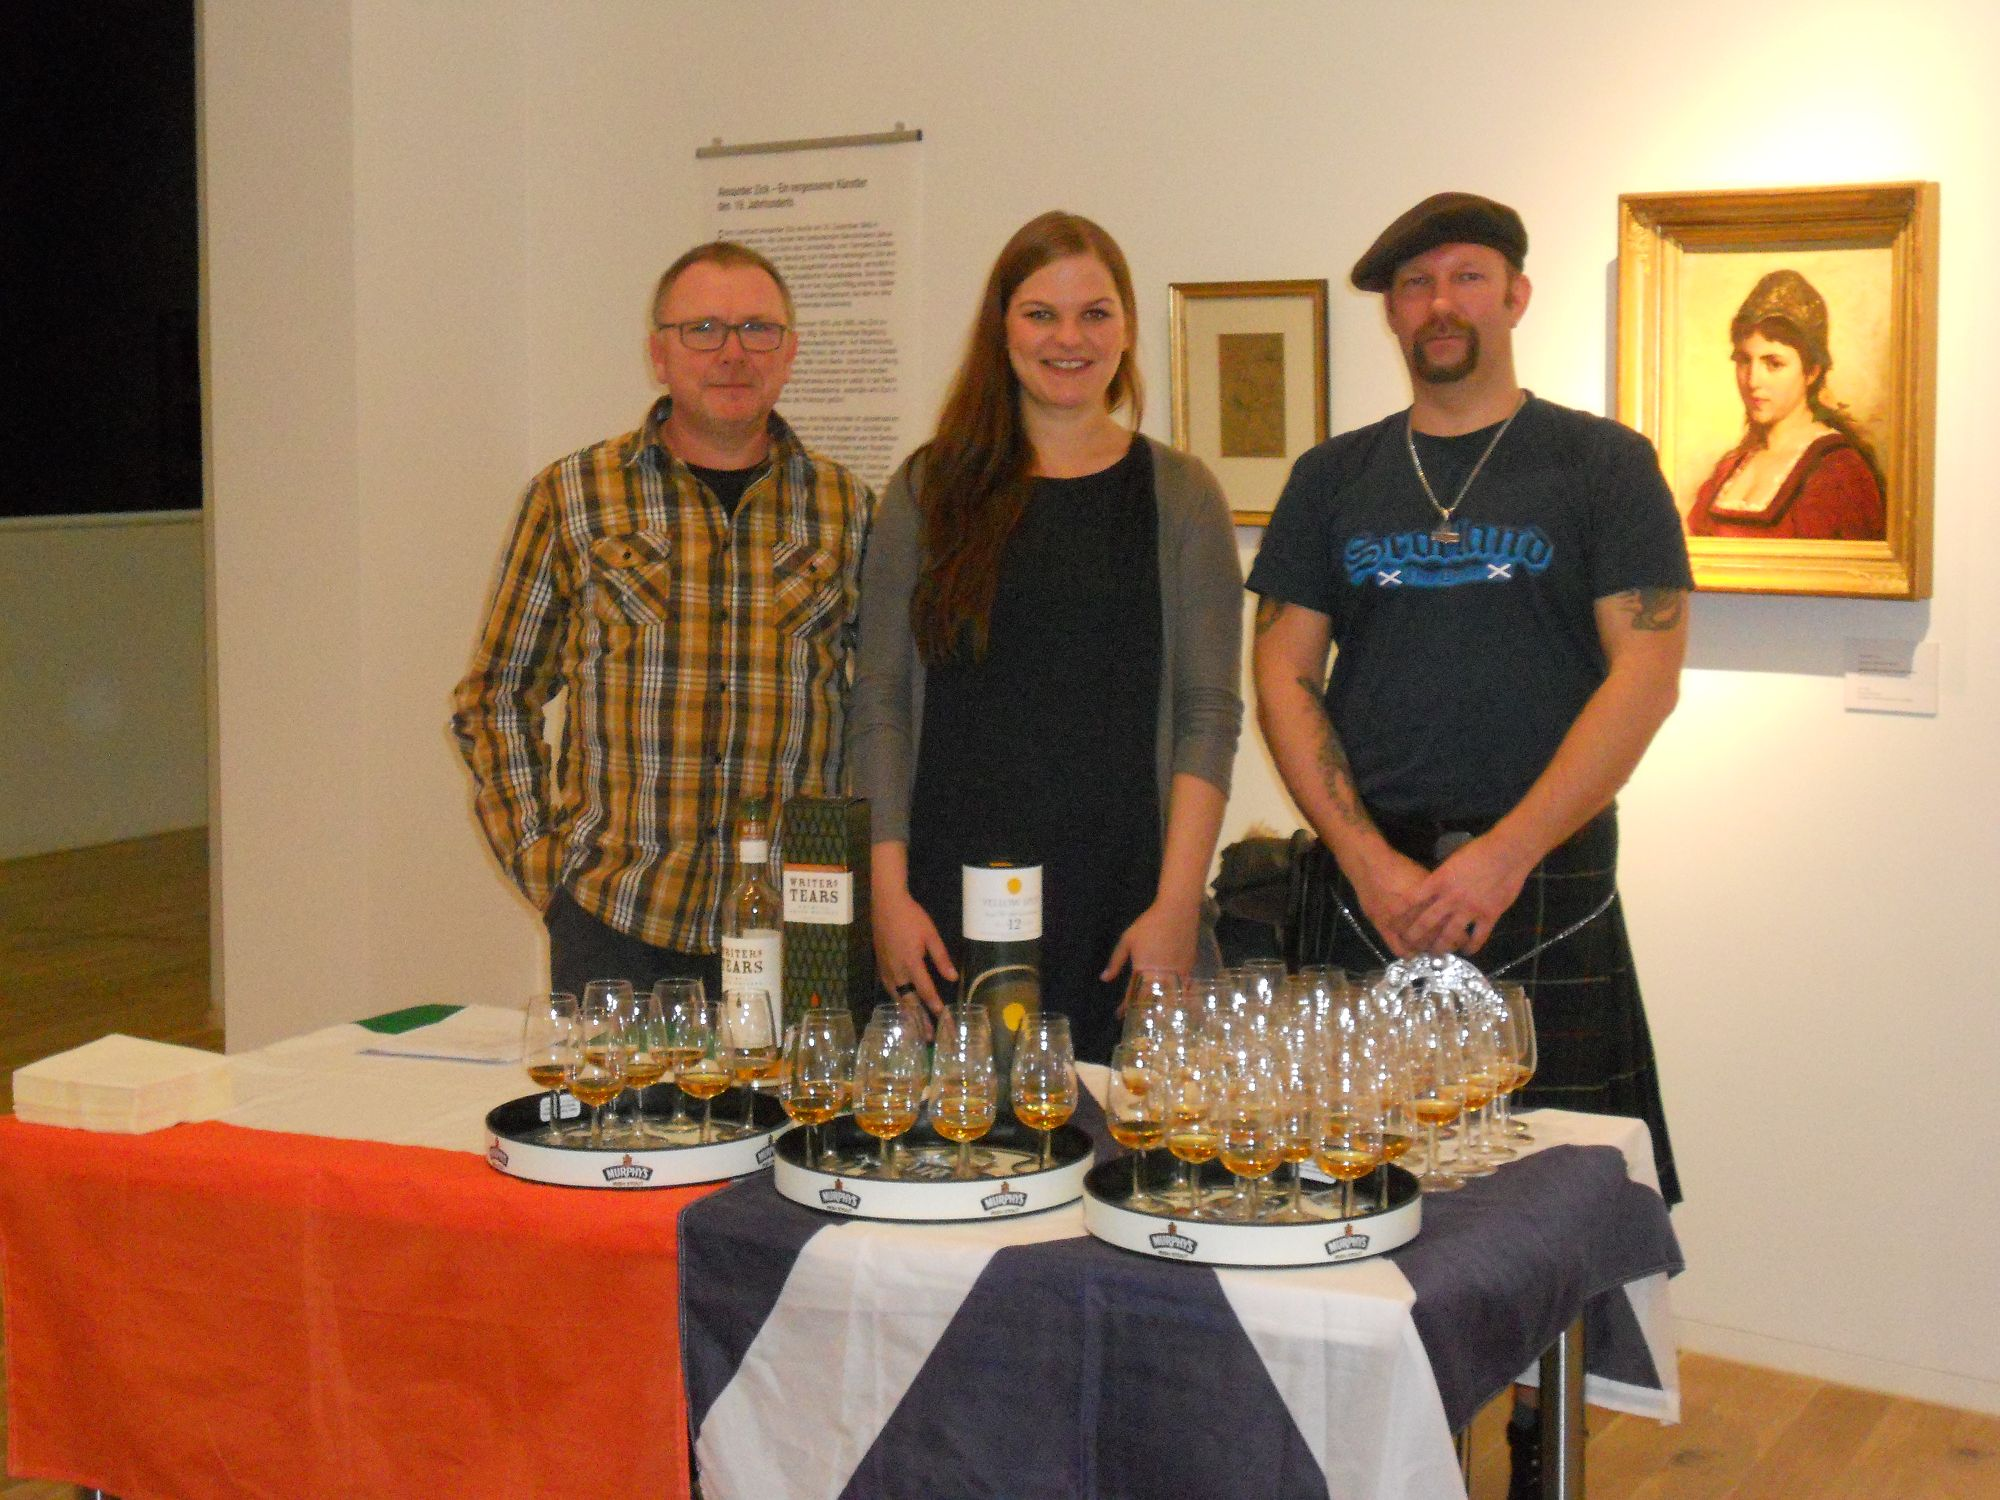 http://pipers-corner.de/media/events/Whisk(e)y-Tasting im Mittelrheinmuseum/k-DSCN3122.JPG